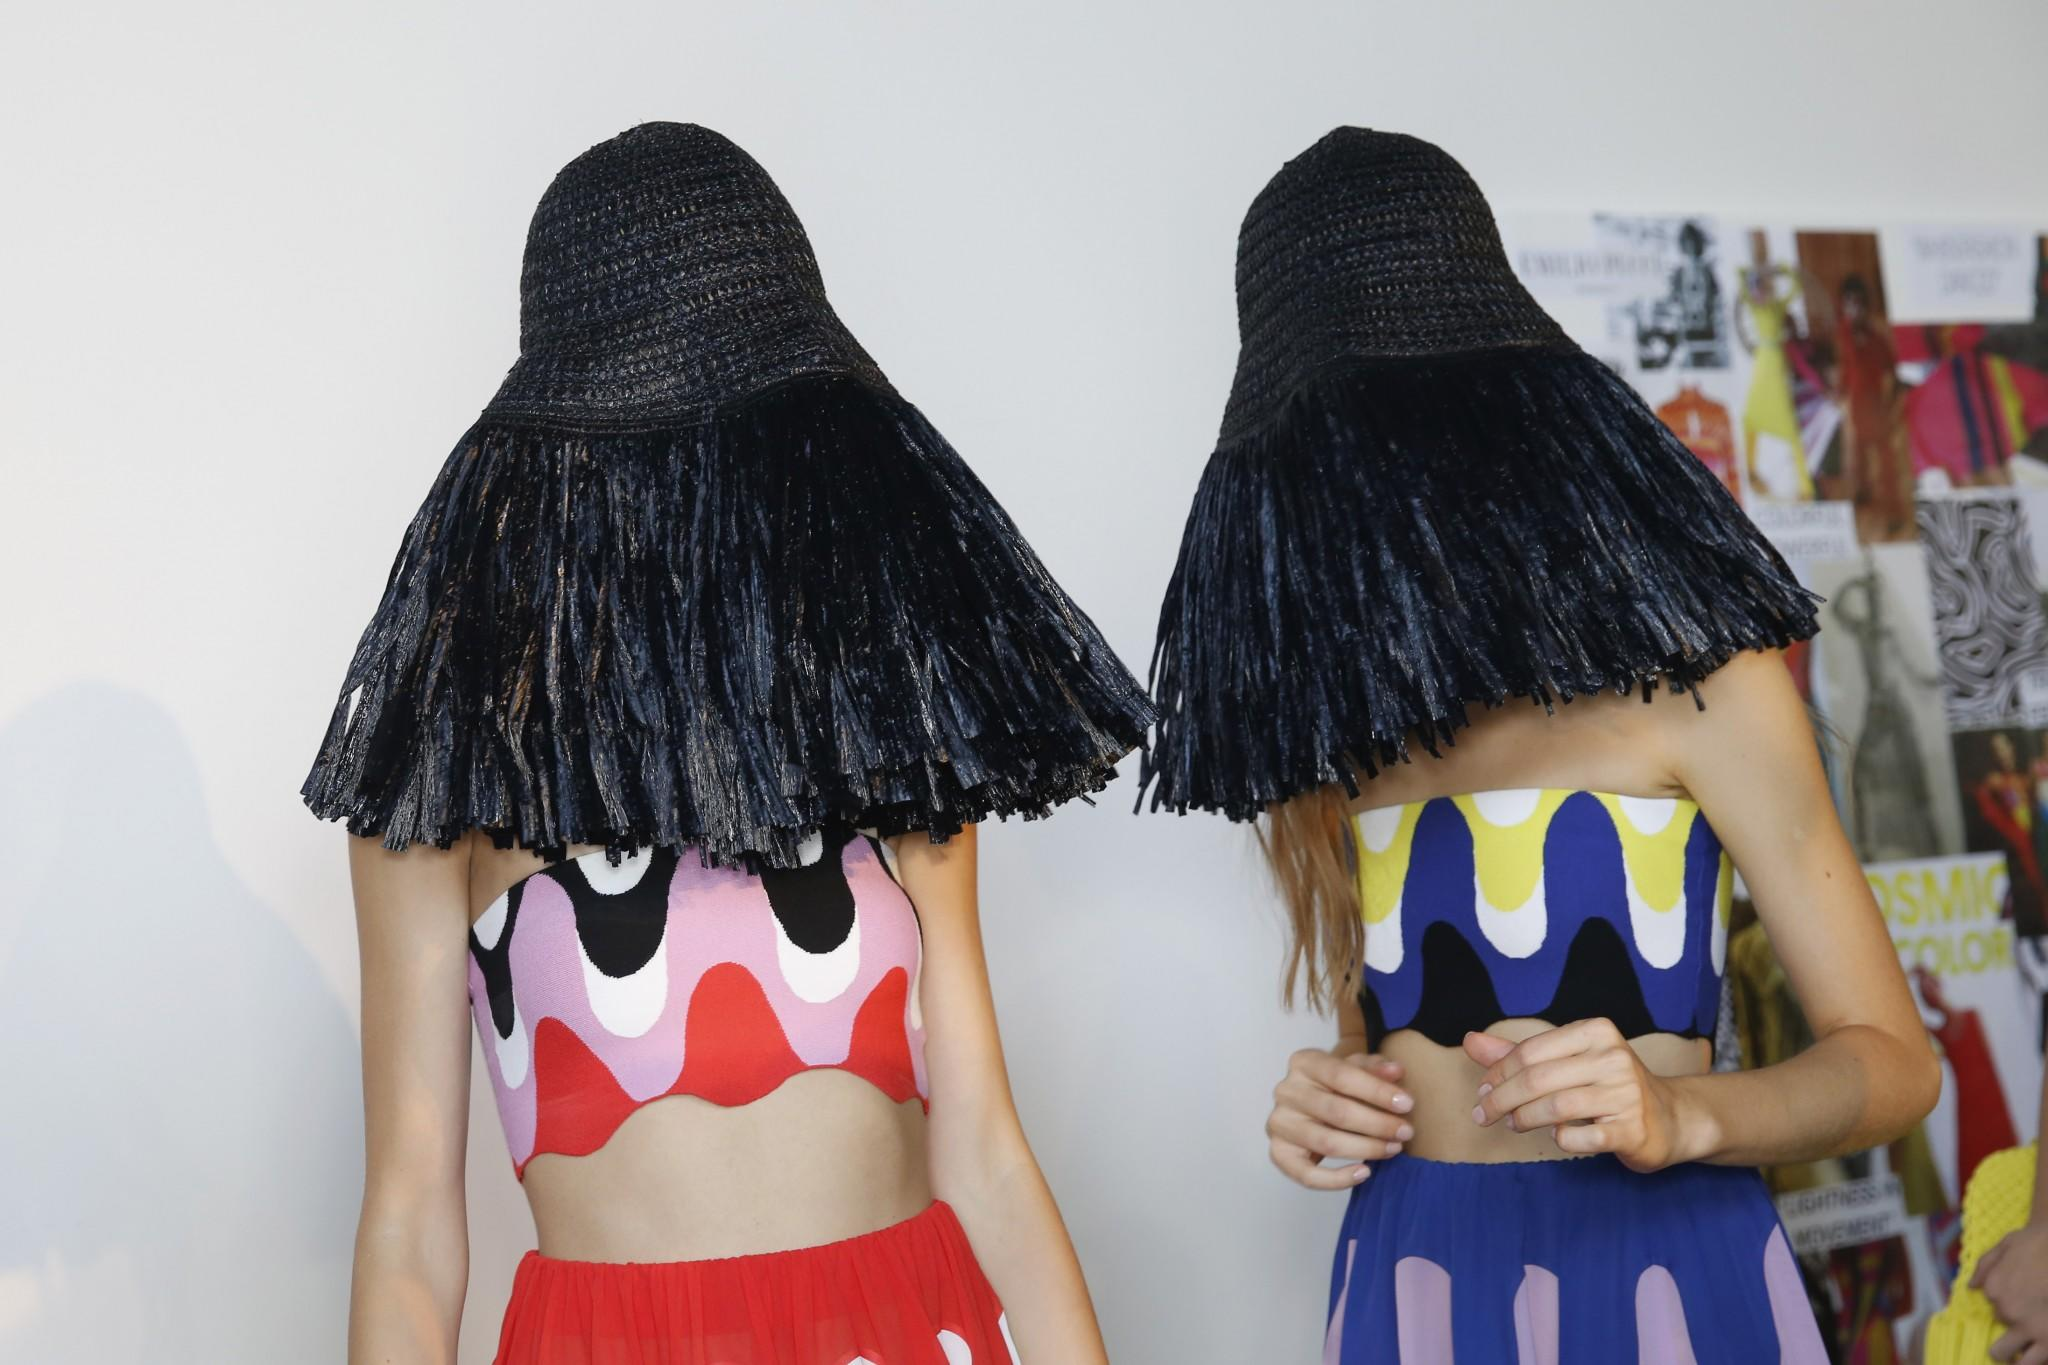 There Were Some Crazy Hats at Milan Fashion Week 56168160fcf8